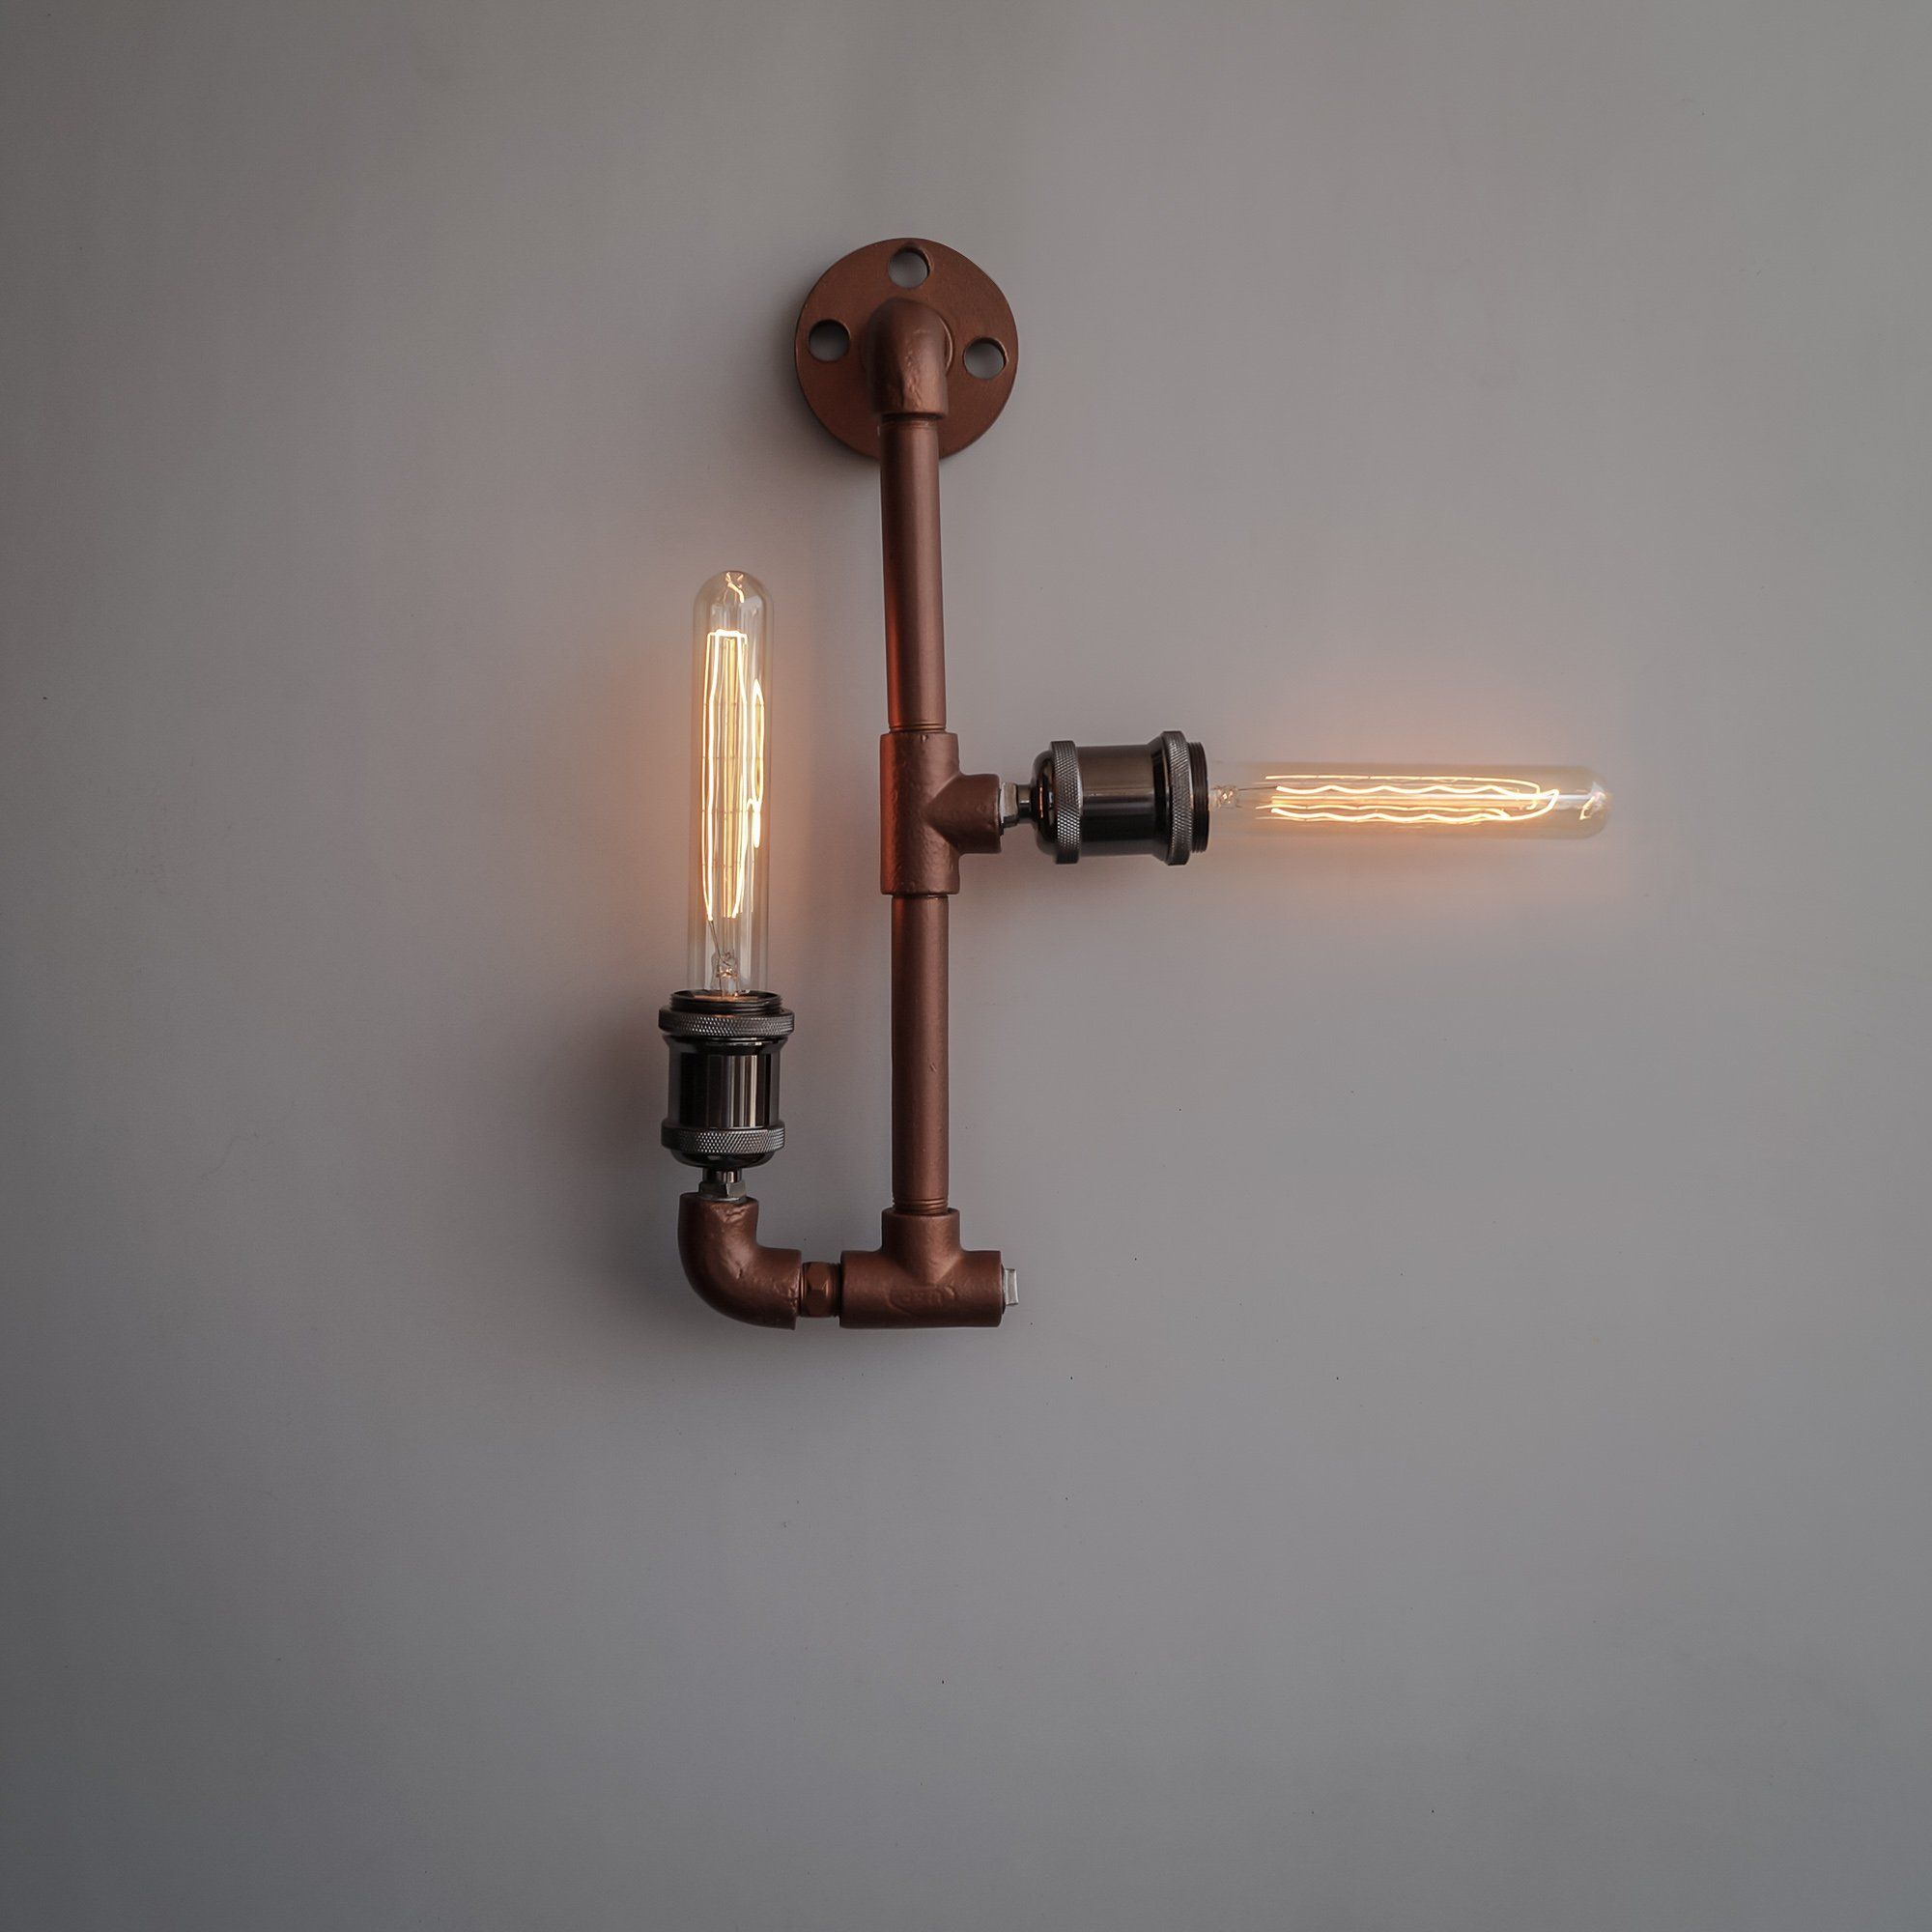 Pipe lamp design ideas shop online decorative wall light india thebacksteel